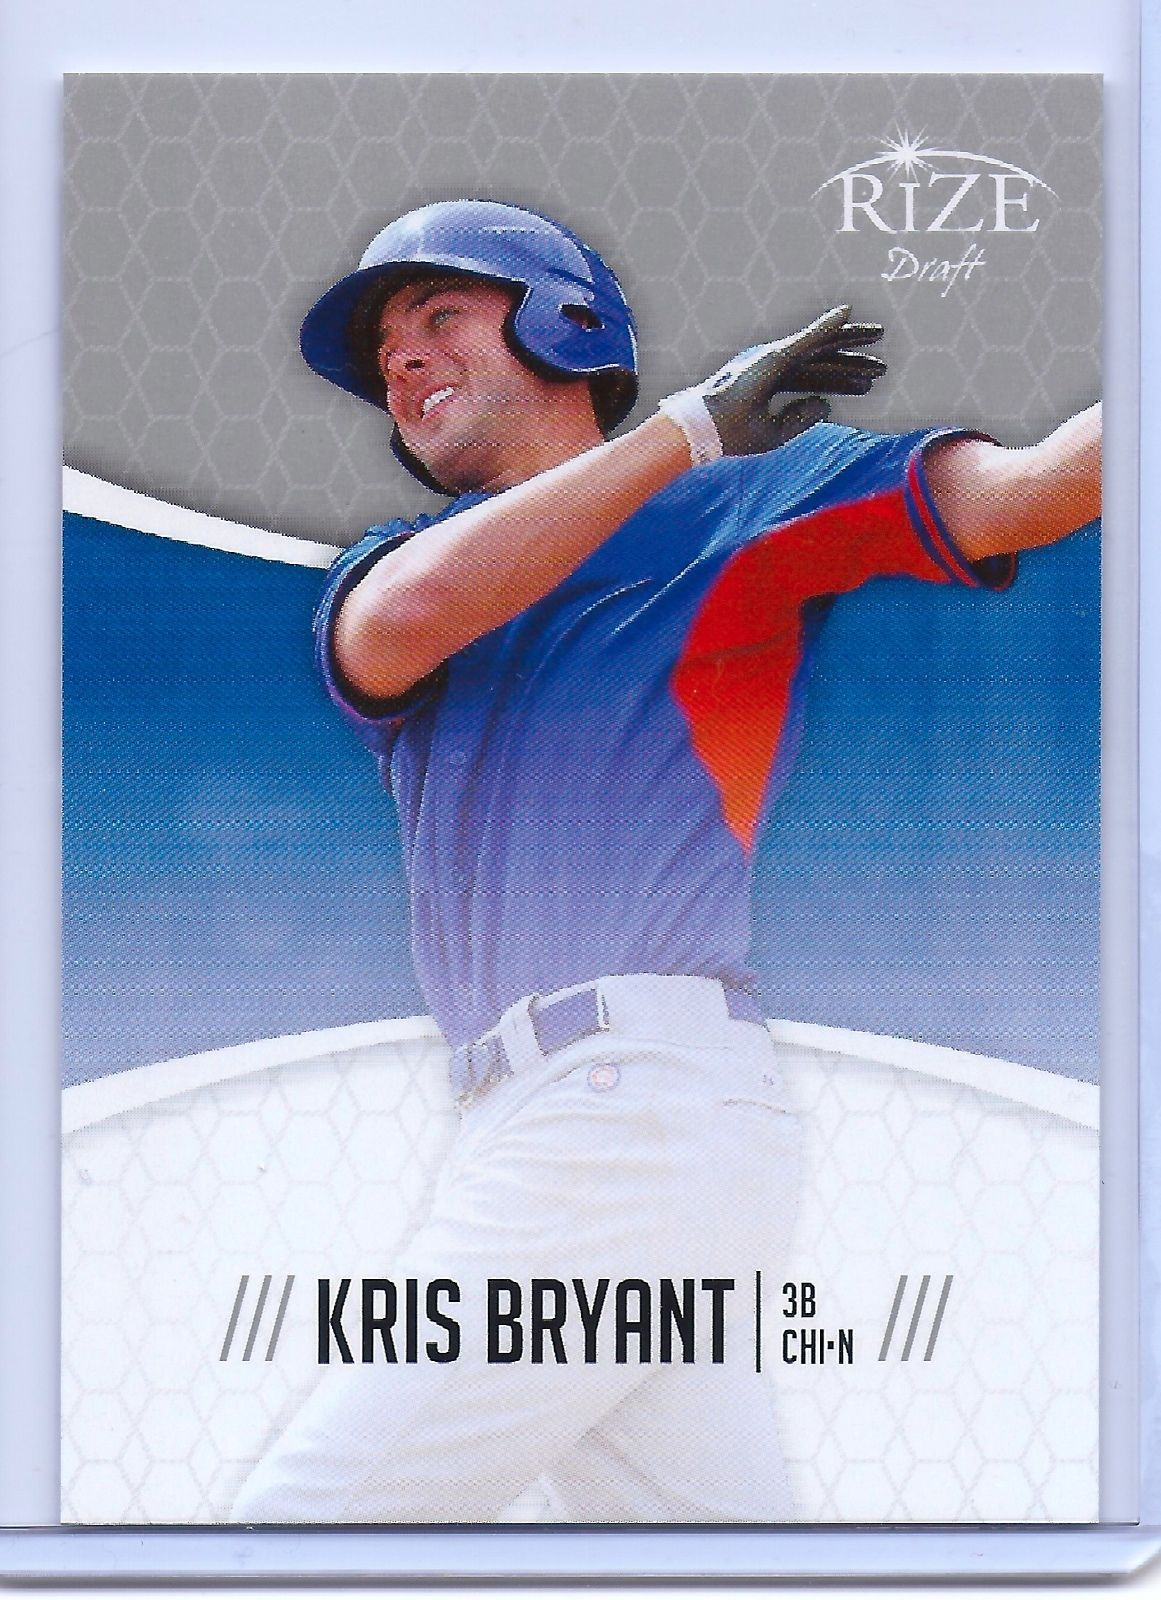 """KRIS BRYANT 2014 LEAF """"RIZE"""" DRAFT CHICAGO CUBS ROOKIE CARD! FUTURE SUPER STAR!"""